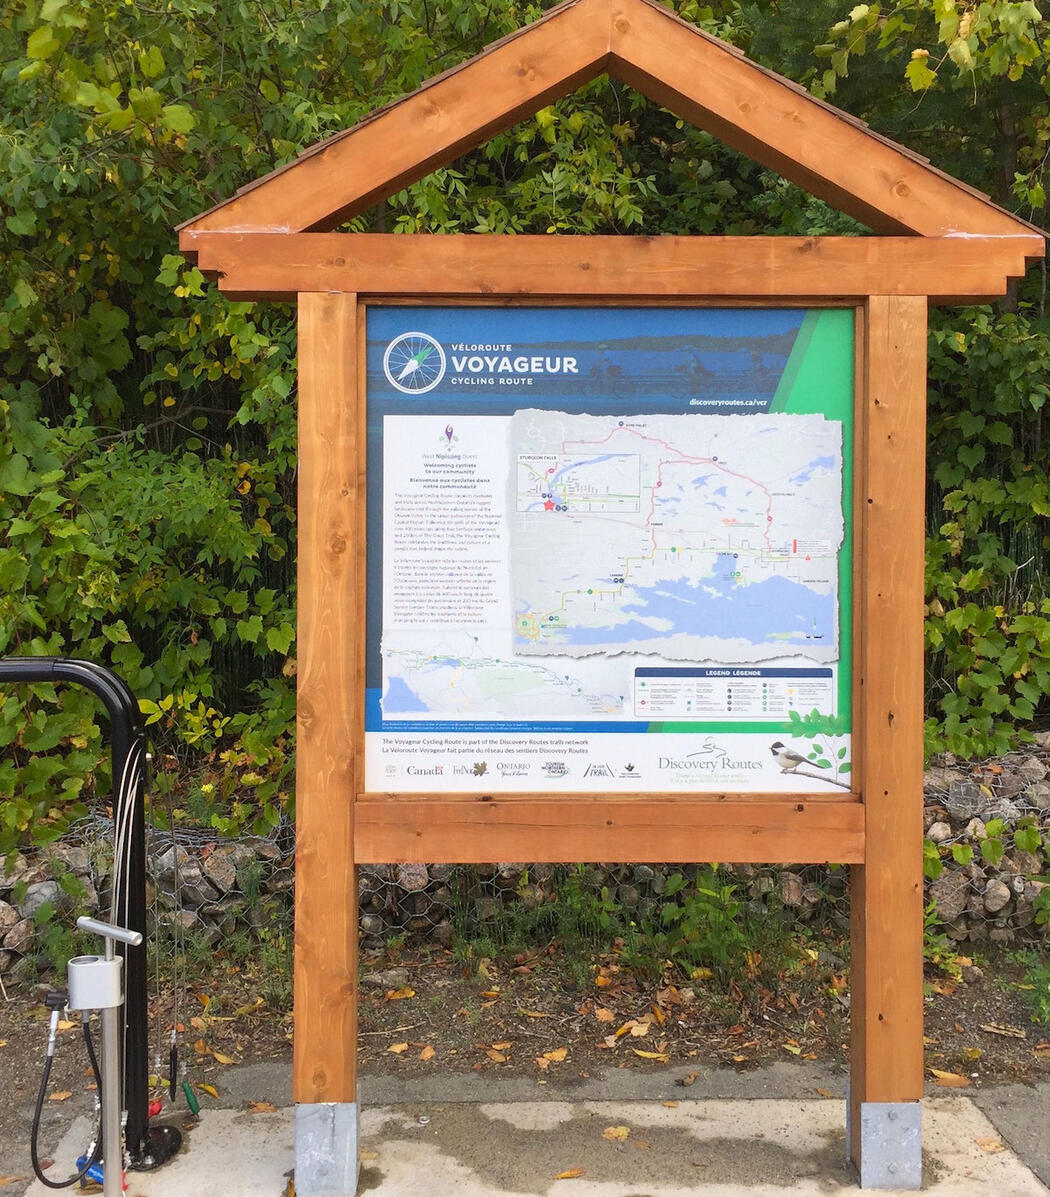 Information kiosk with map of Voyageur Cycle Route and bicycle air pump